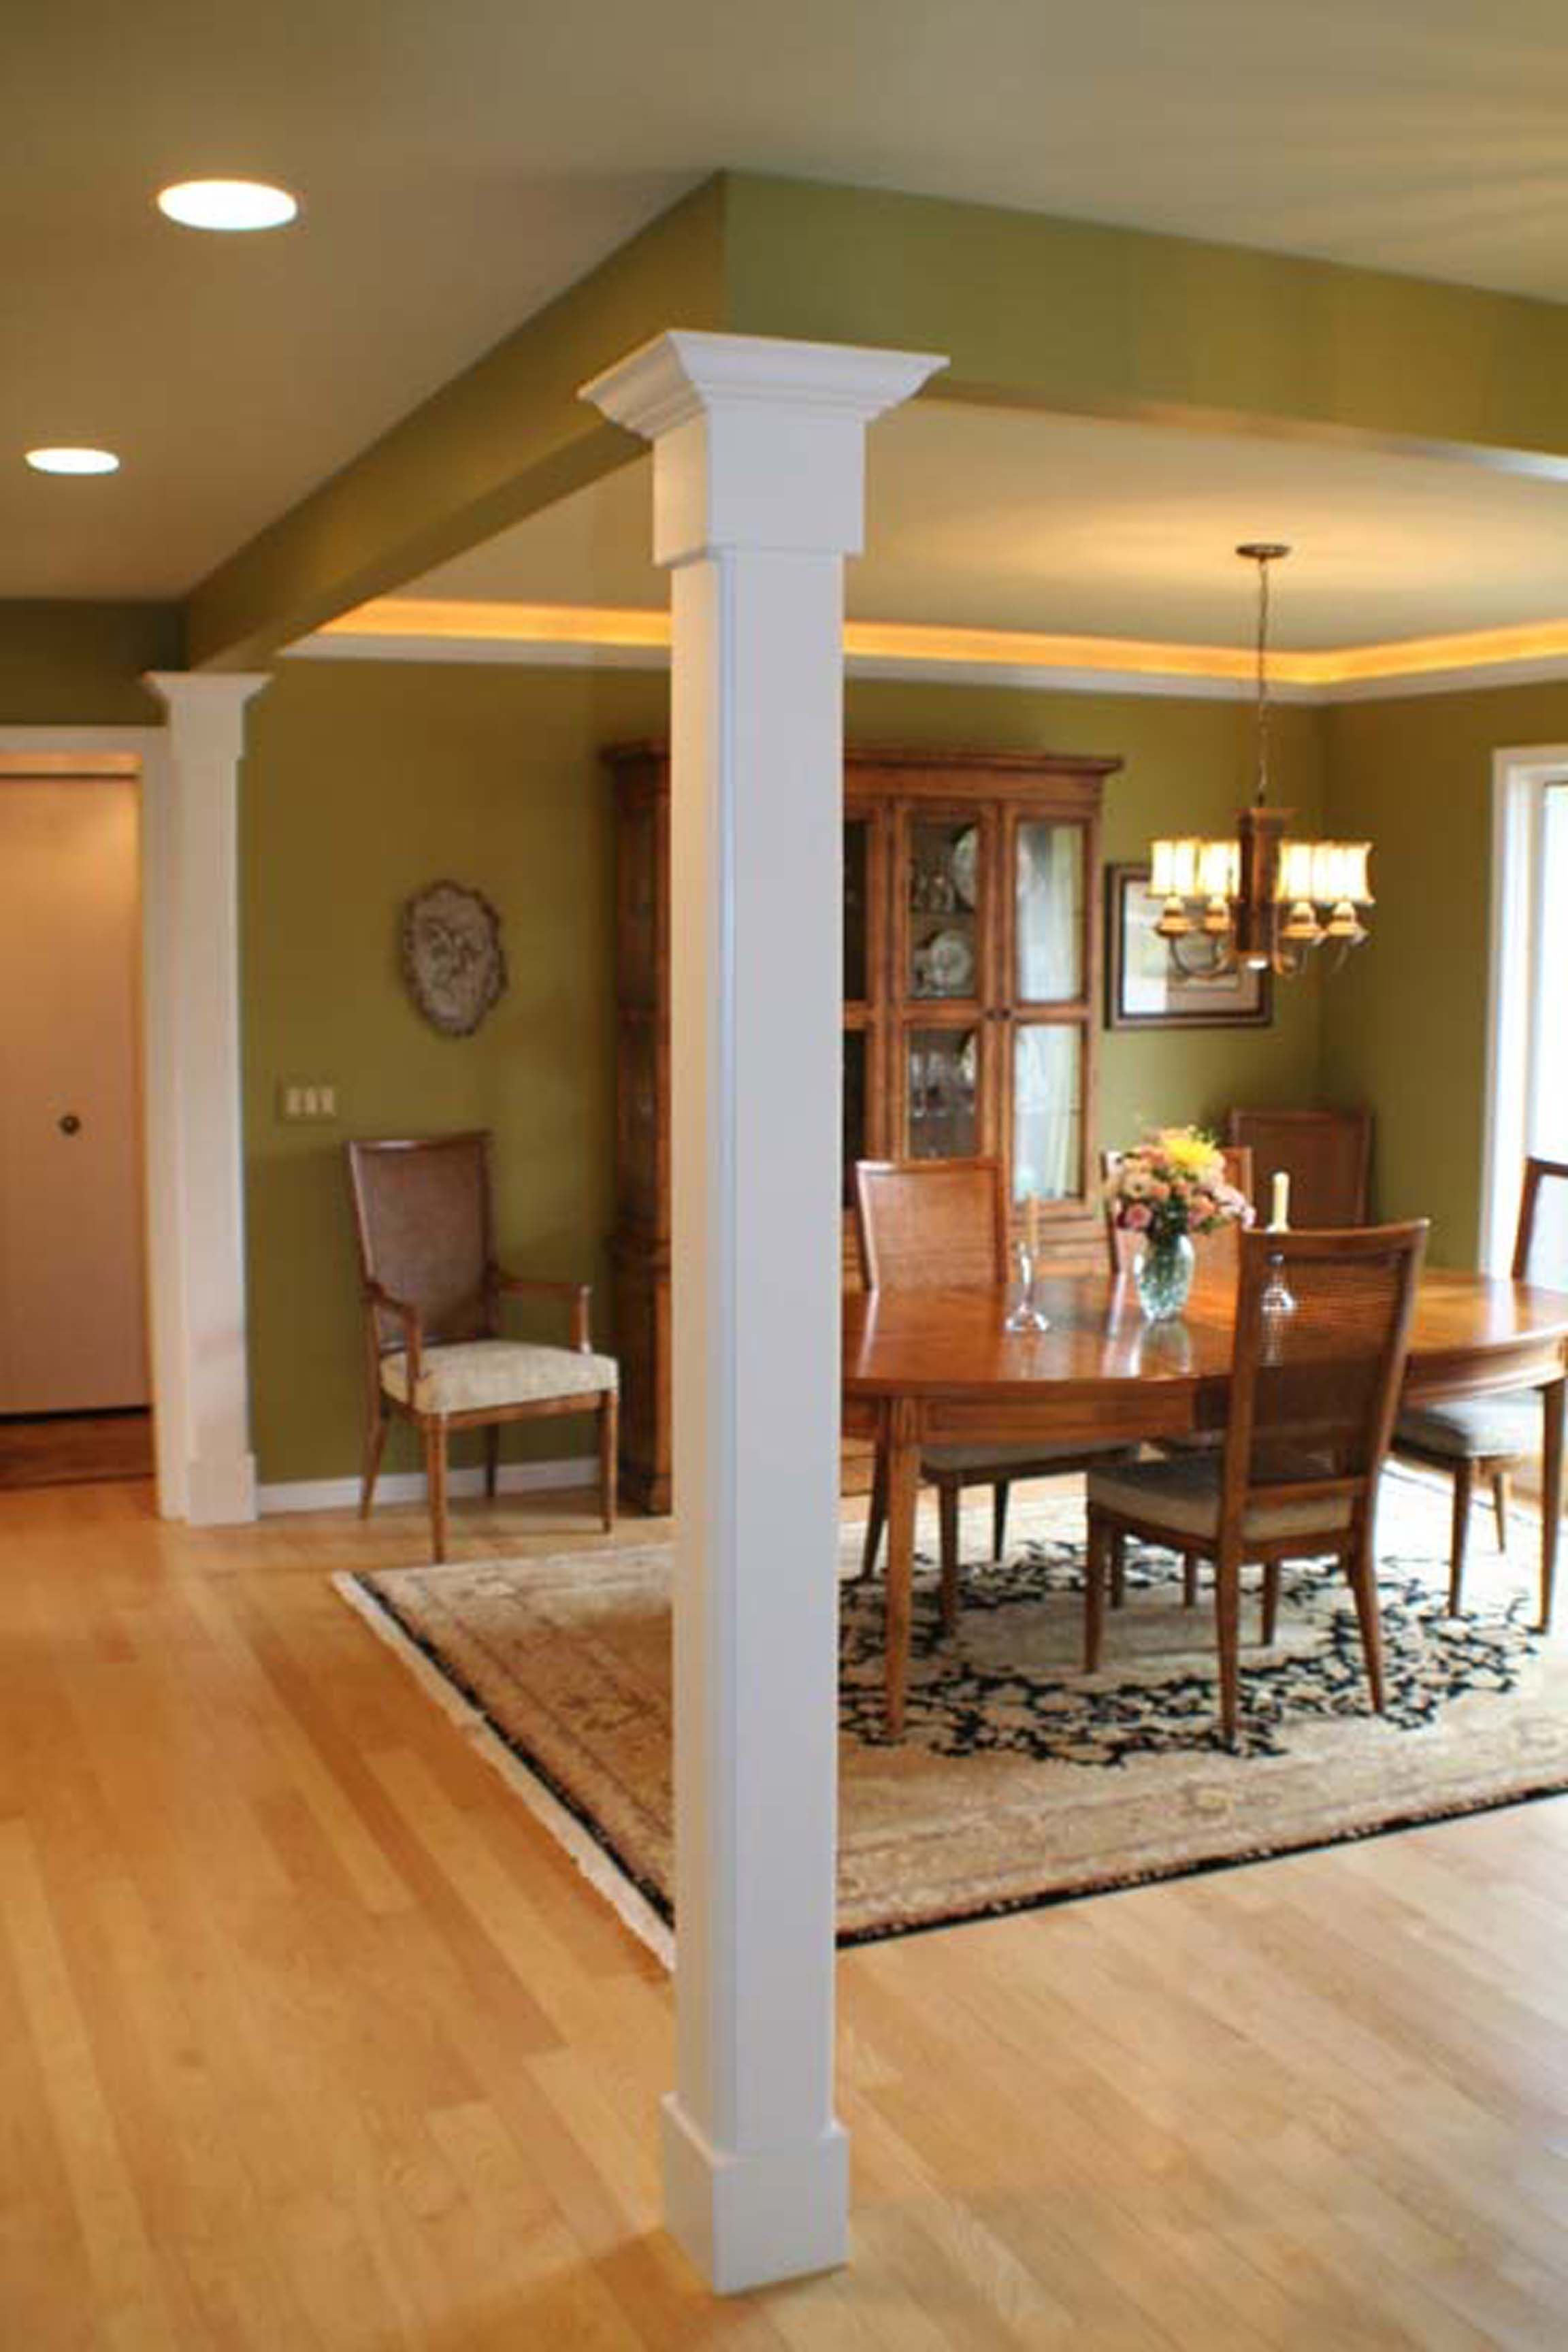 After tearing down the confining dining room walls we Interior columns design ideas